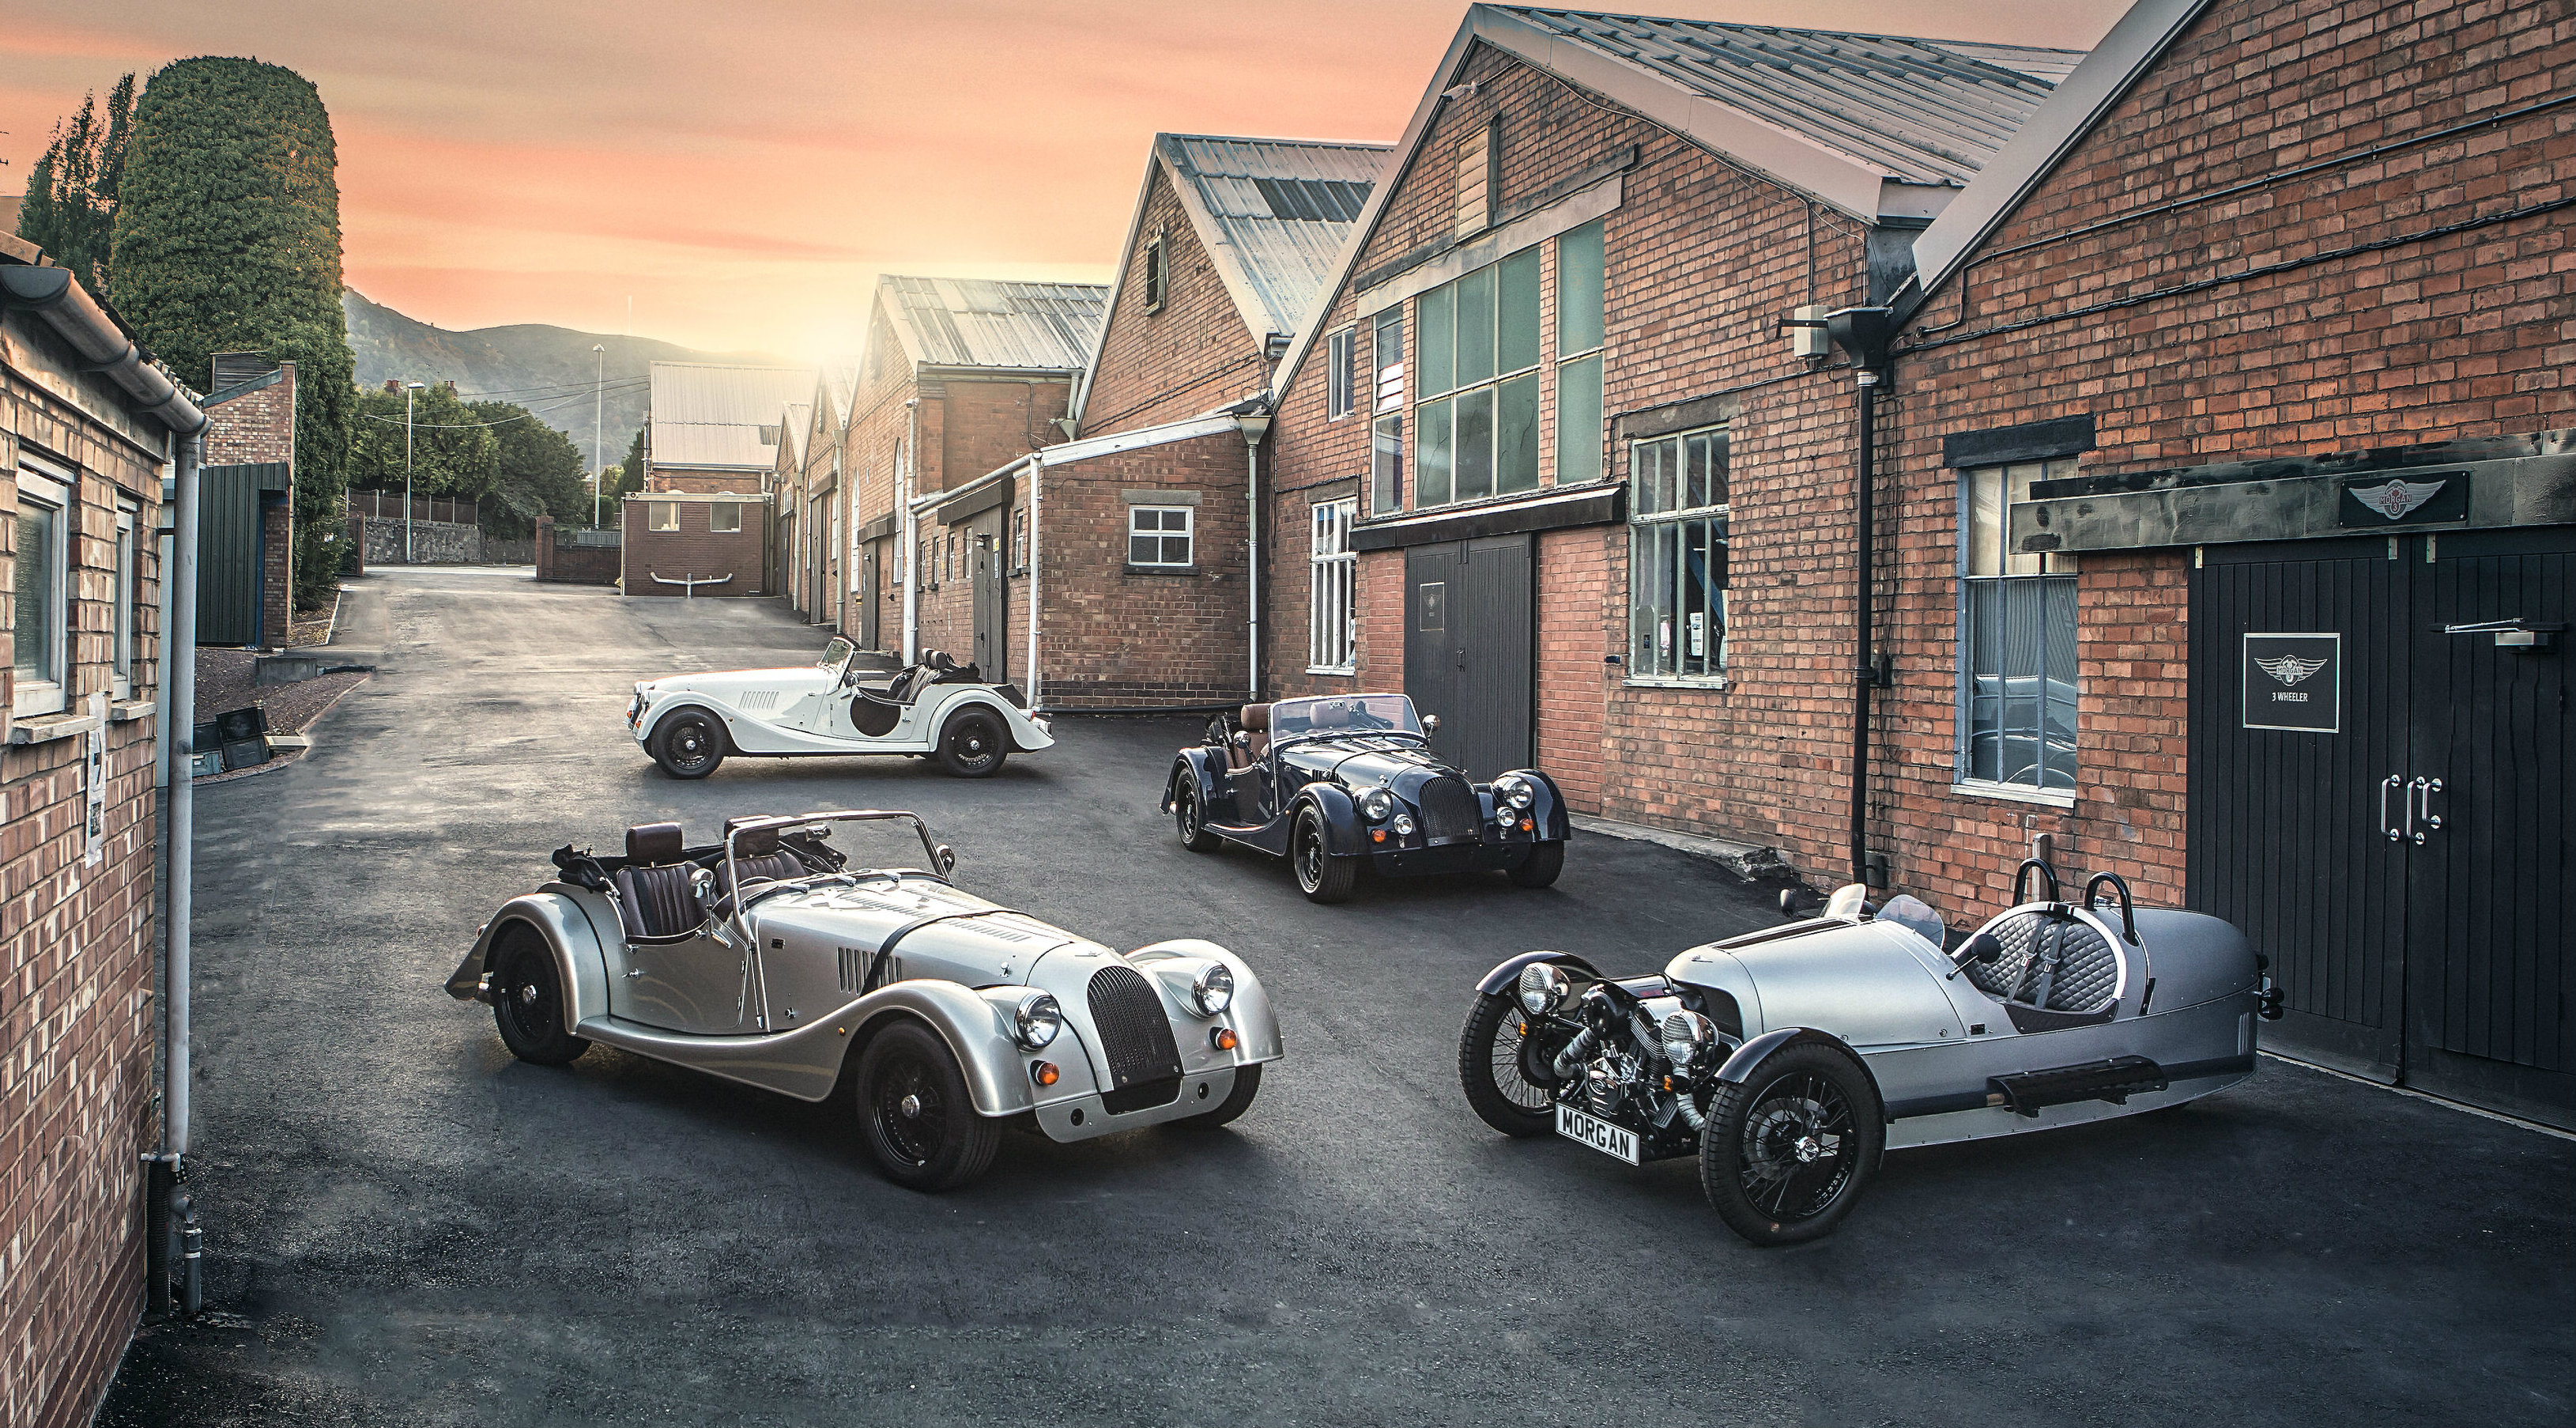 Morgan Motor Company introduces a range of '110 Anniversary' models ahead of the privately owned manufacturer's 110th anniversary in 2019, with each '110 Anniversary' model carrying unique celebratory badging to signify its importance as a '110' edition vehicle.